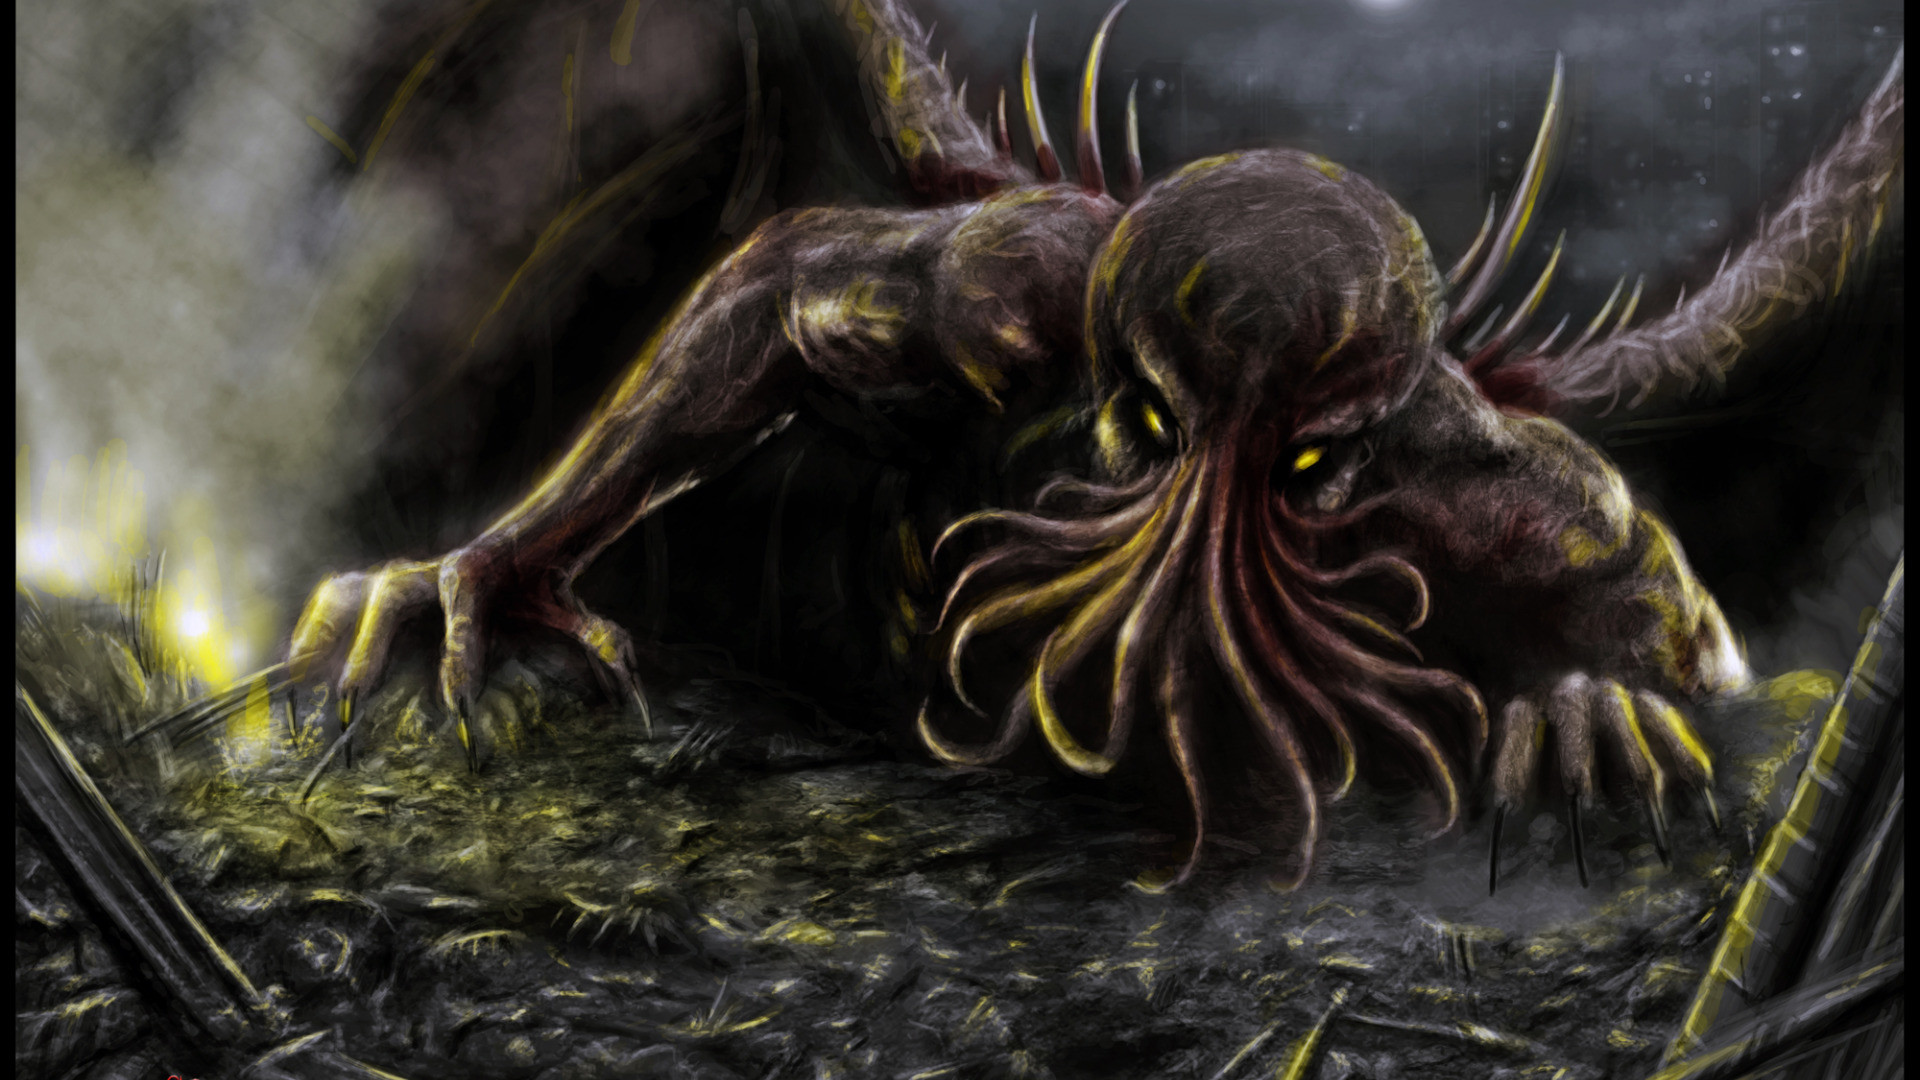 Res: 1920x1080, Lovecraft Wallpaper  Download Wallpaper Cthulhu Lovecraft  Necronomicon S On Under The Ice Creepy